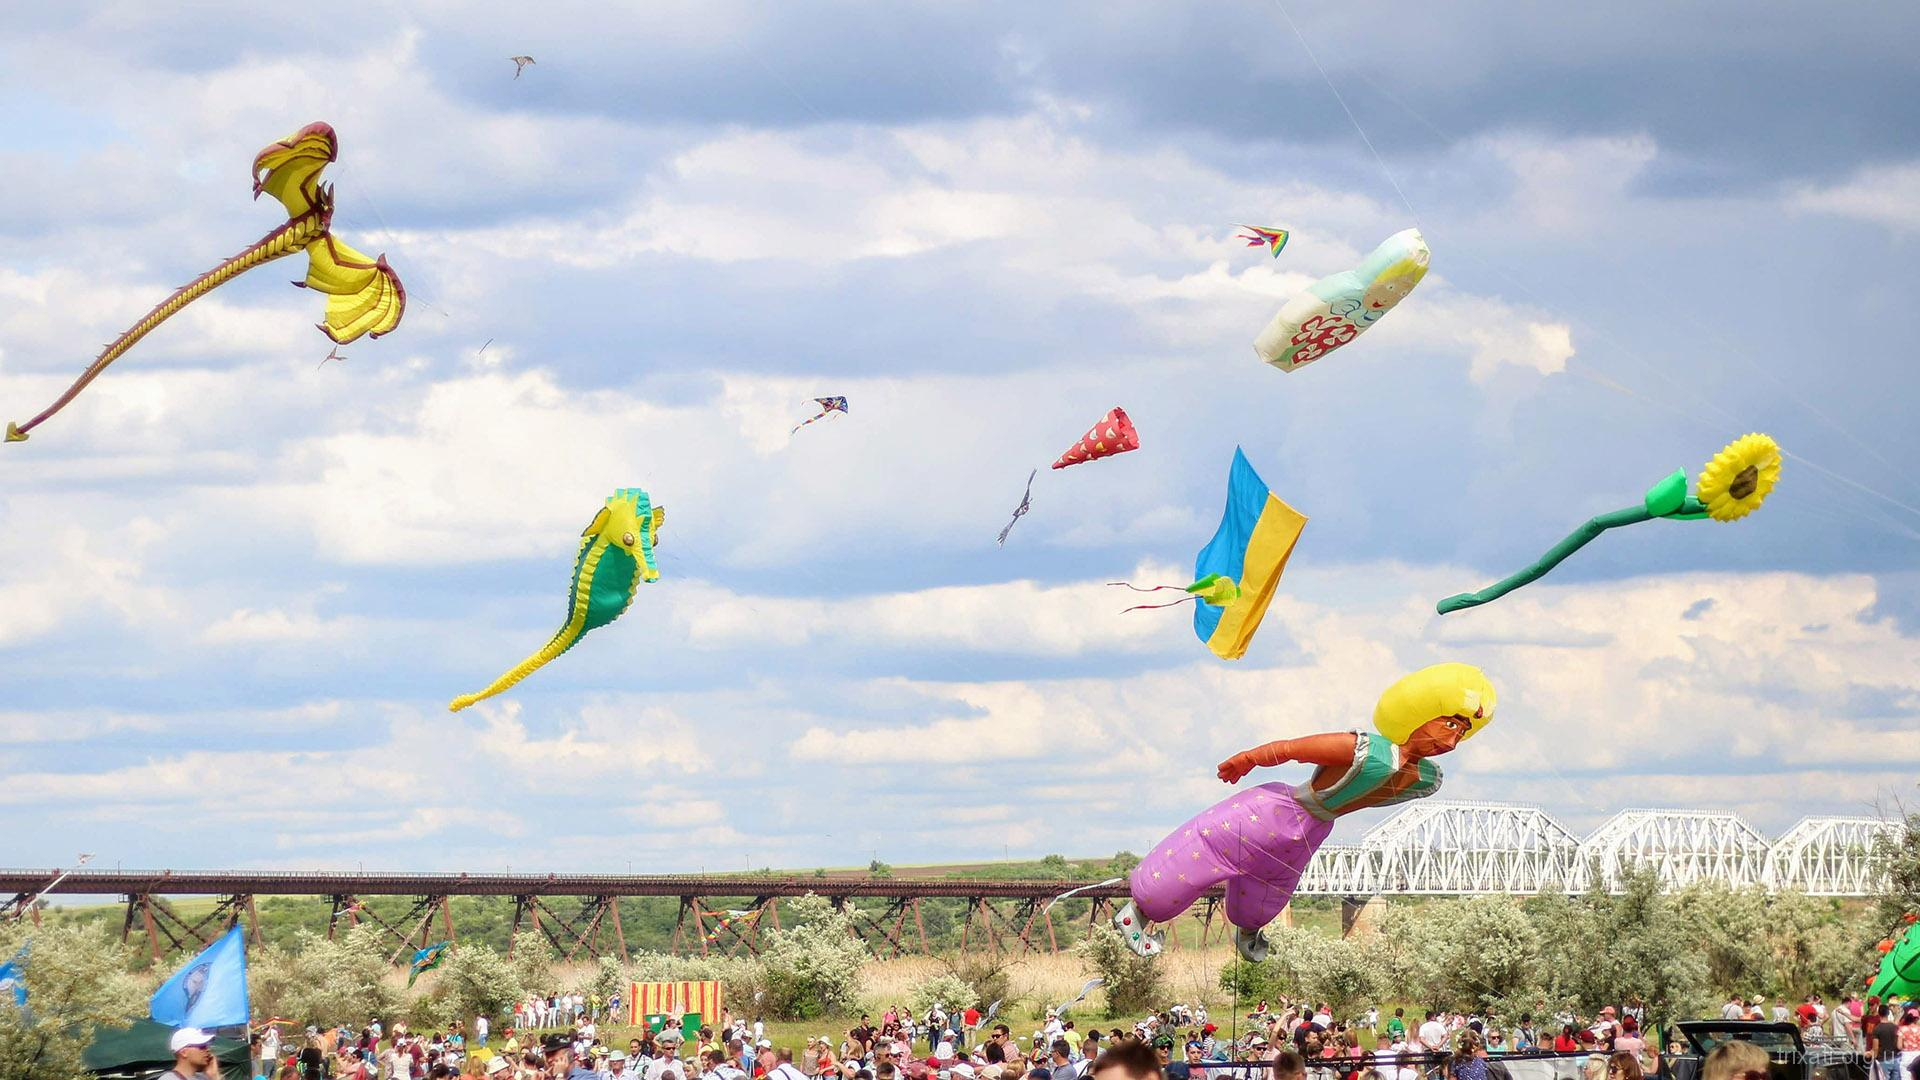 Tryhutty Kite Fest 2018